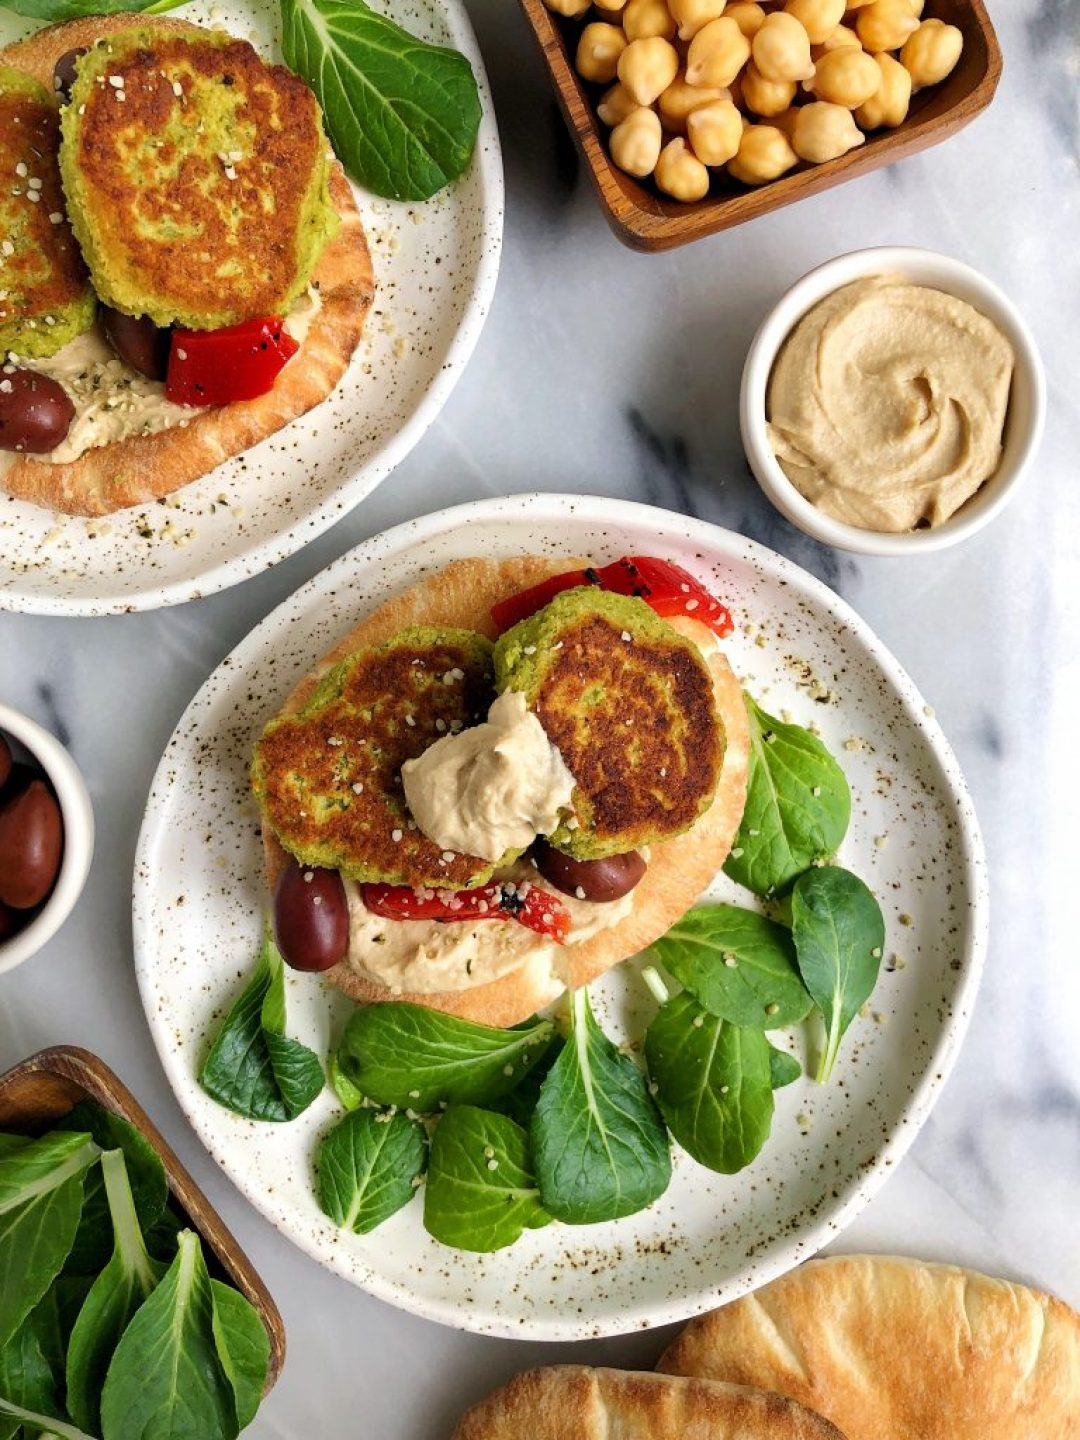 10-minute Crispy Green Falafels made with chickpeas, greens and other healthy and delicious vegan and gluten-free ingredients!